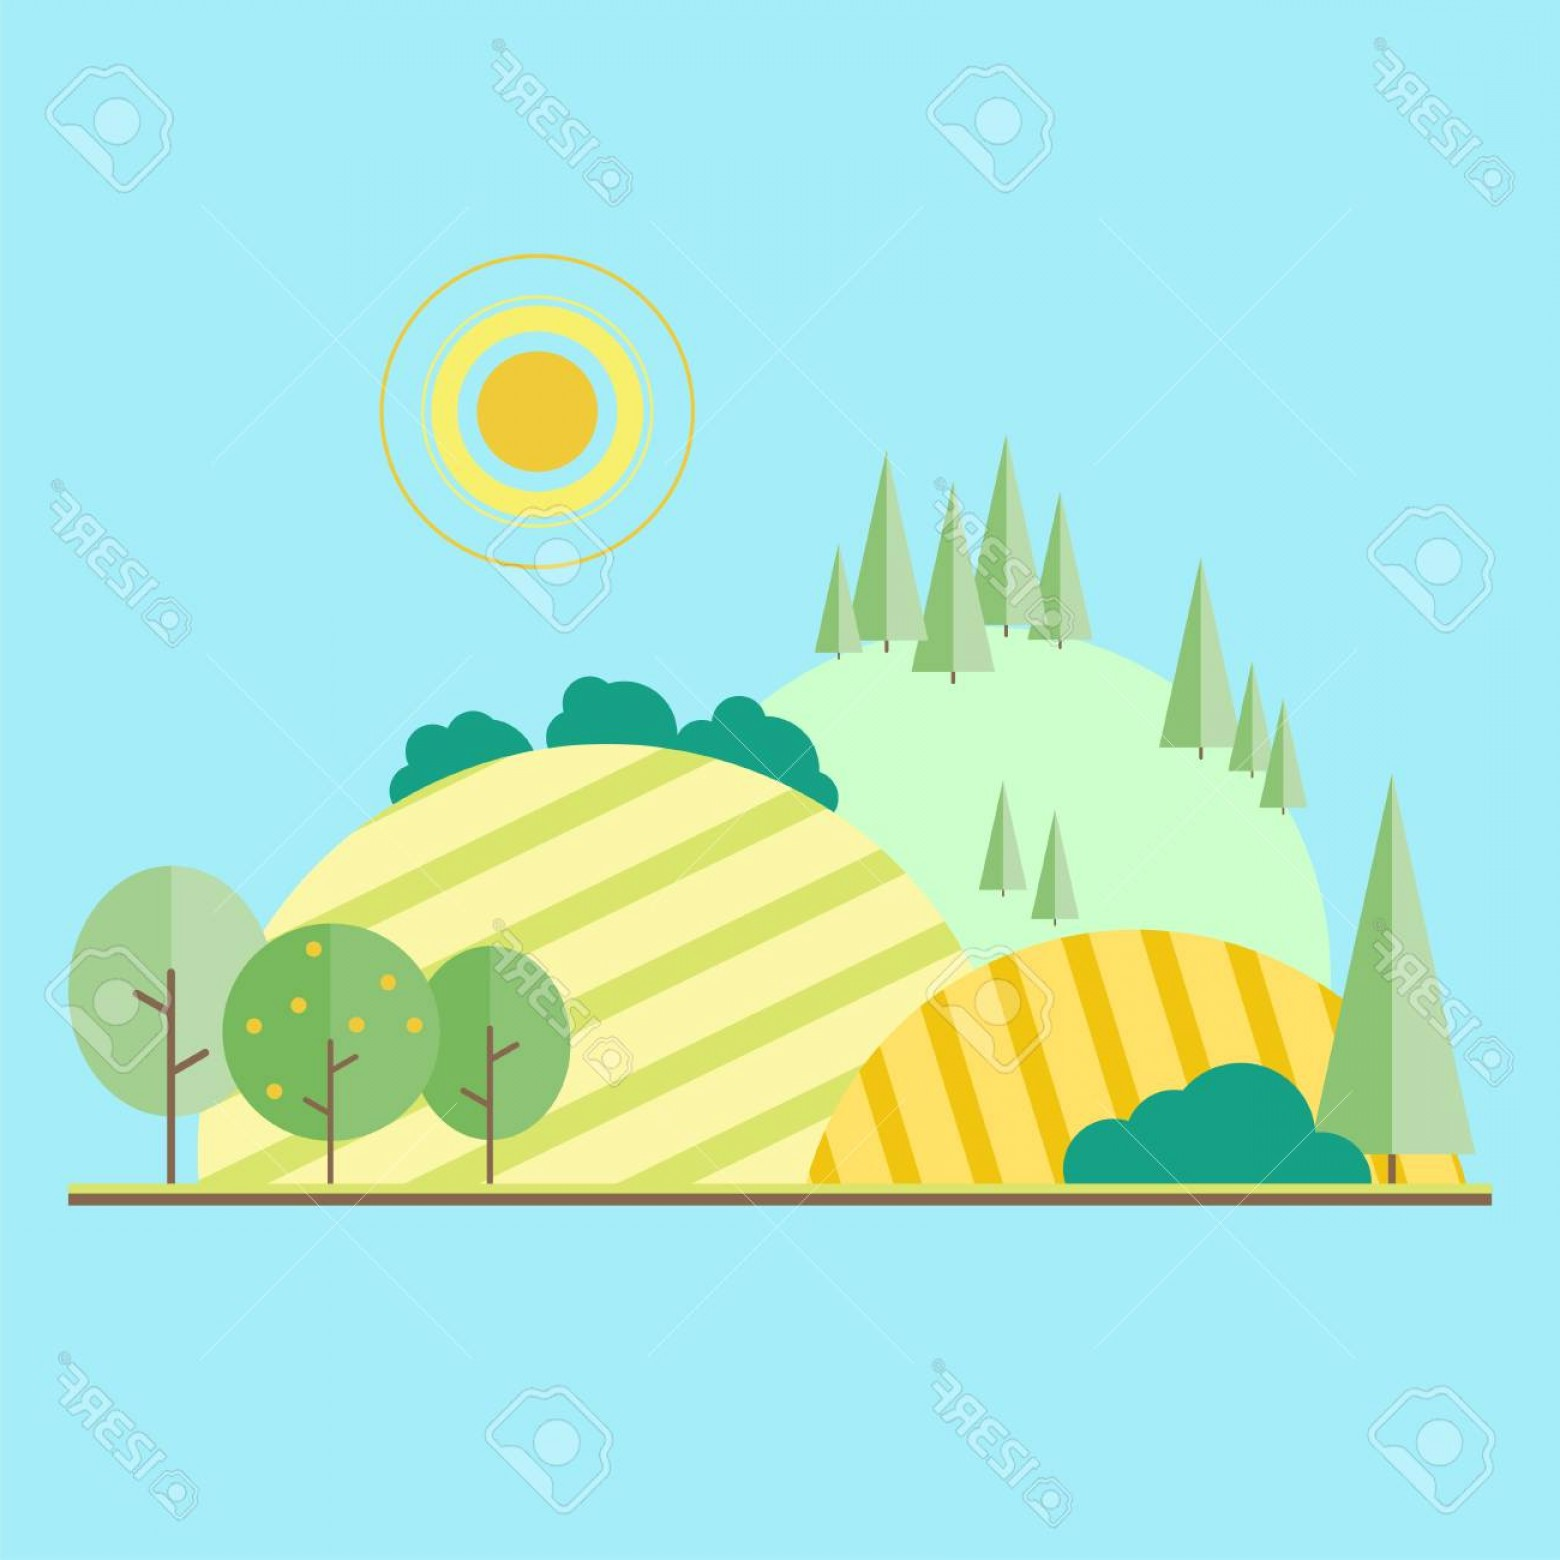 Flat Vector Art And Abstract Forest: Photostock Vector Vector Flat Illustrations Eco Style Life Abstract Forest Fruit Trees And Field